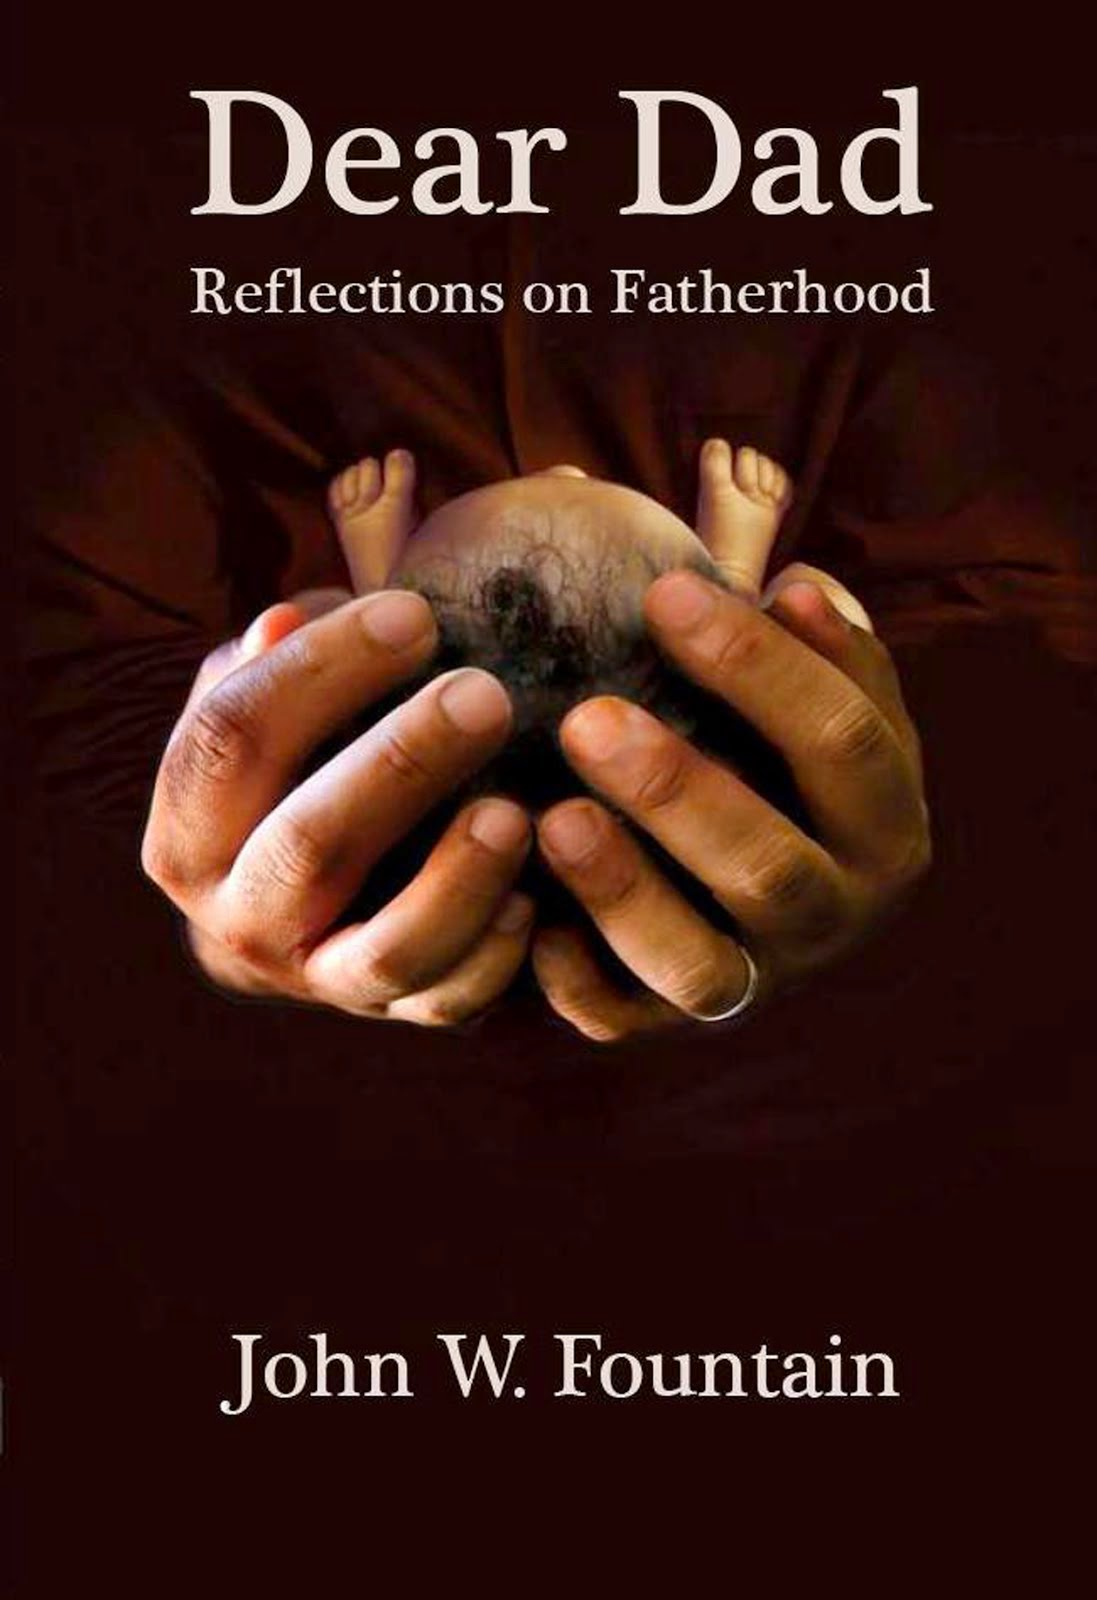 Buy Dear Dad: Reflections on Fatherhood